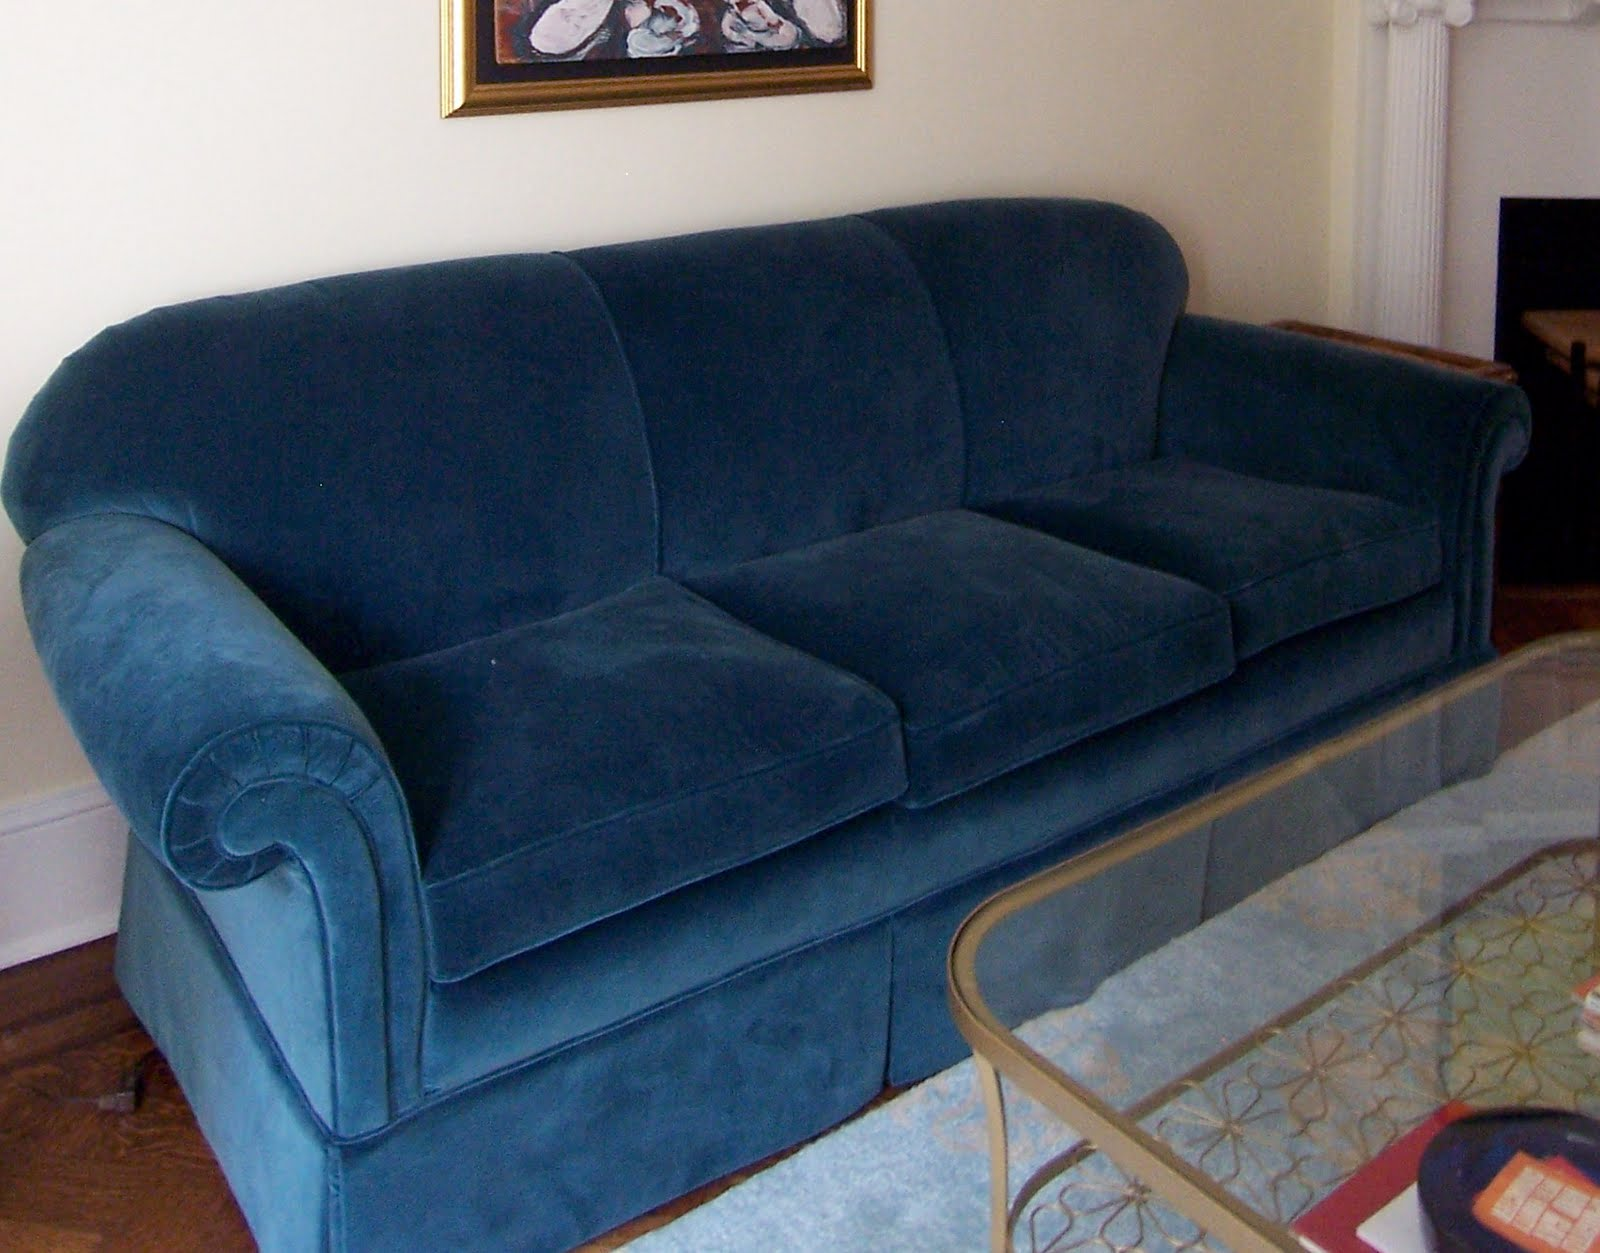 Reupholstering Furniture Is Expensive Interior Design By